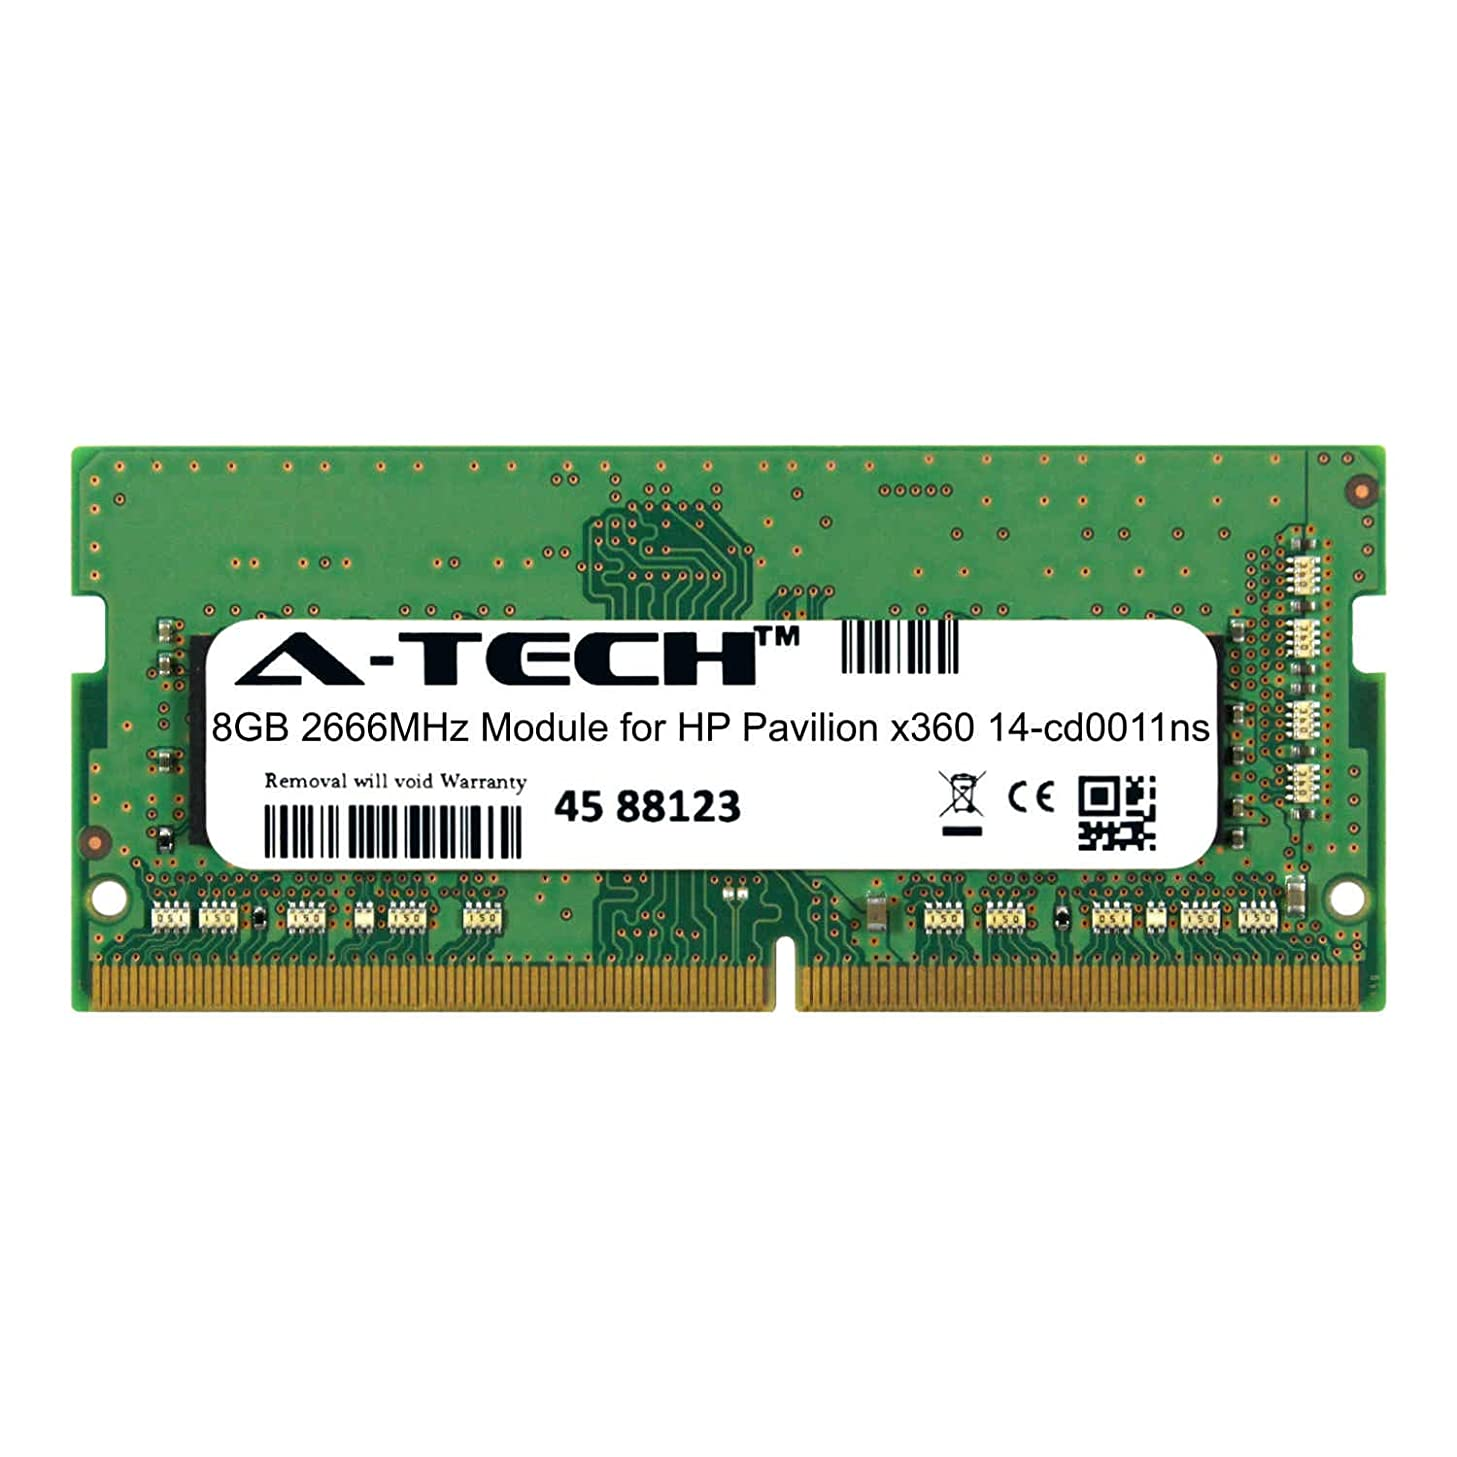 A-Tech 8GB Module for HP Pavilion x360 14-cd0011ns Laptop & Notebook Compatible DDR4 2666Mhz Memory Ram (ATMS305777A25978X1)